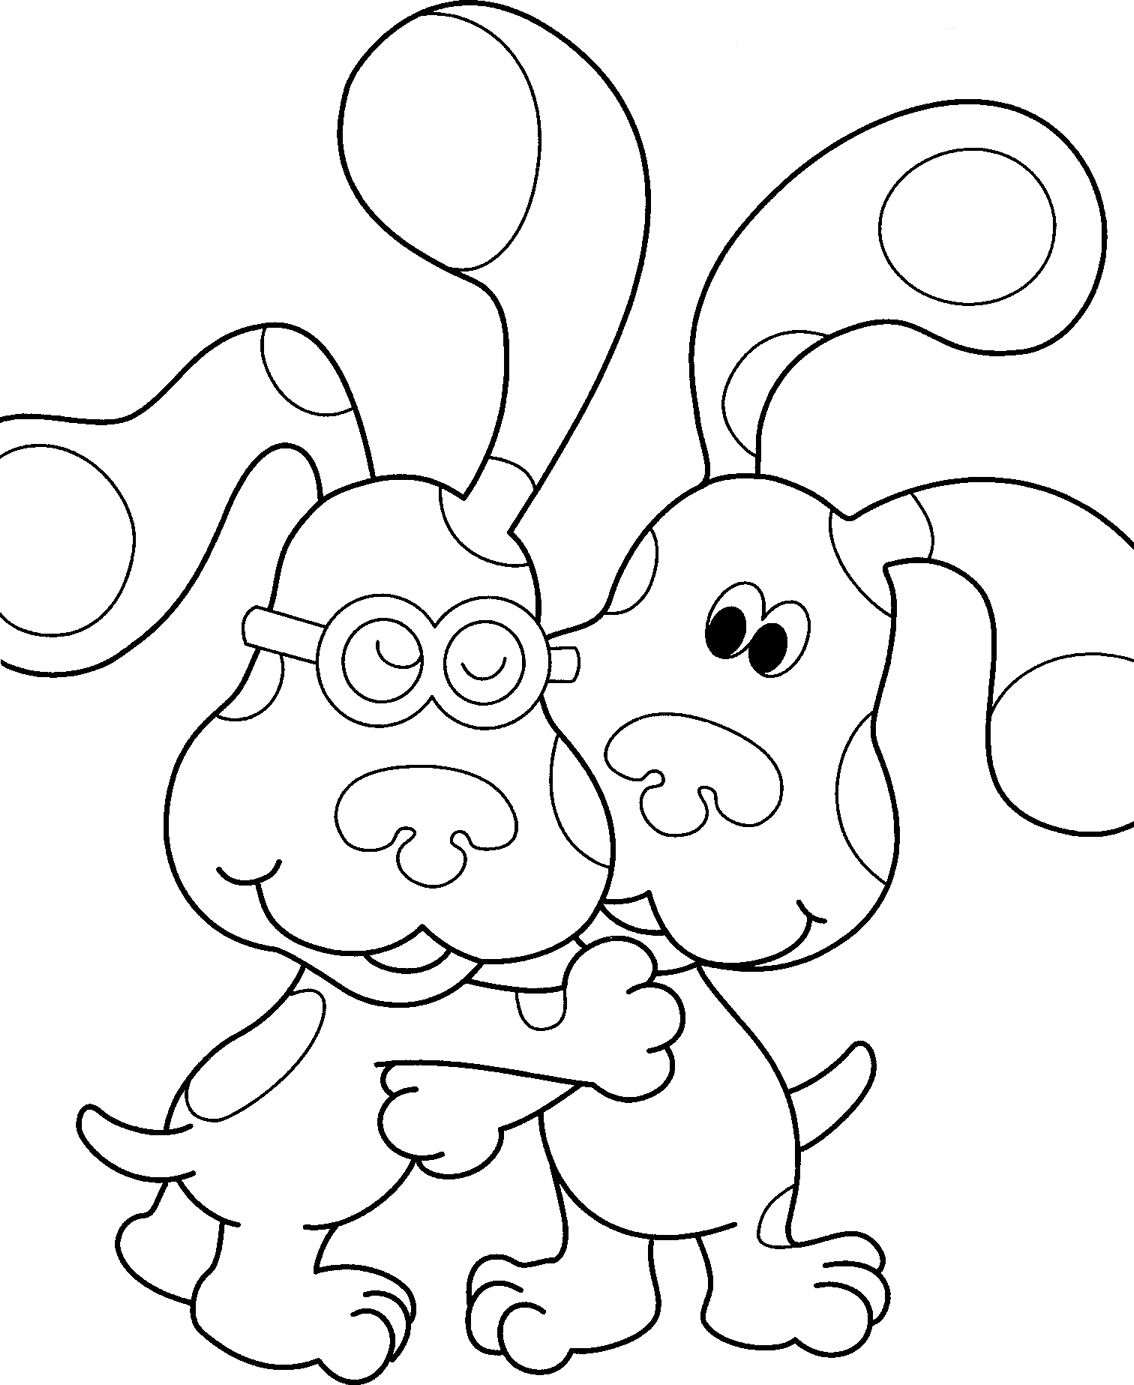 Nick jr summer coloring pages - Nick Jr Coloring Pages 6 Coloring Kids